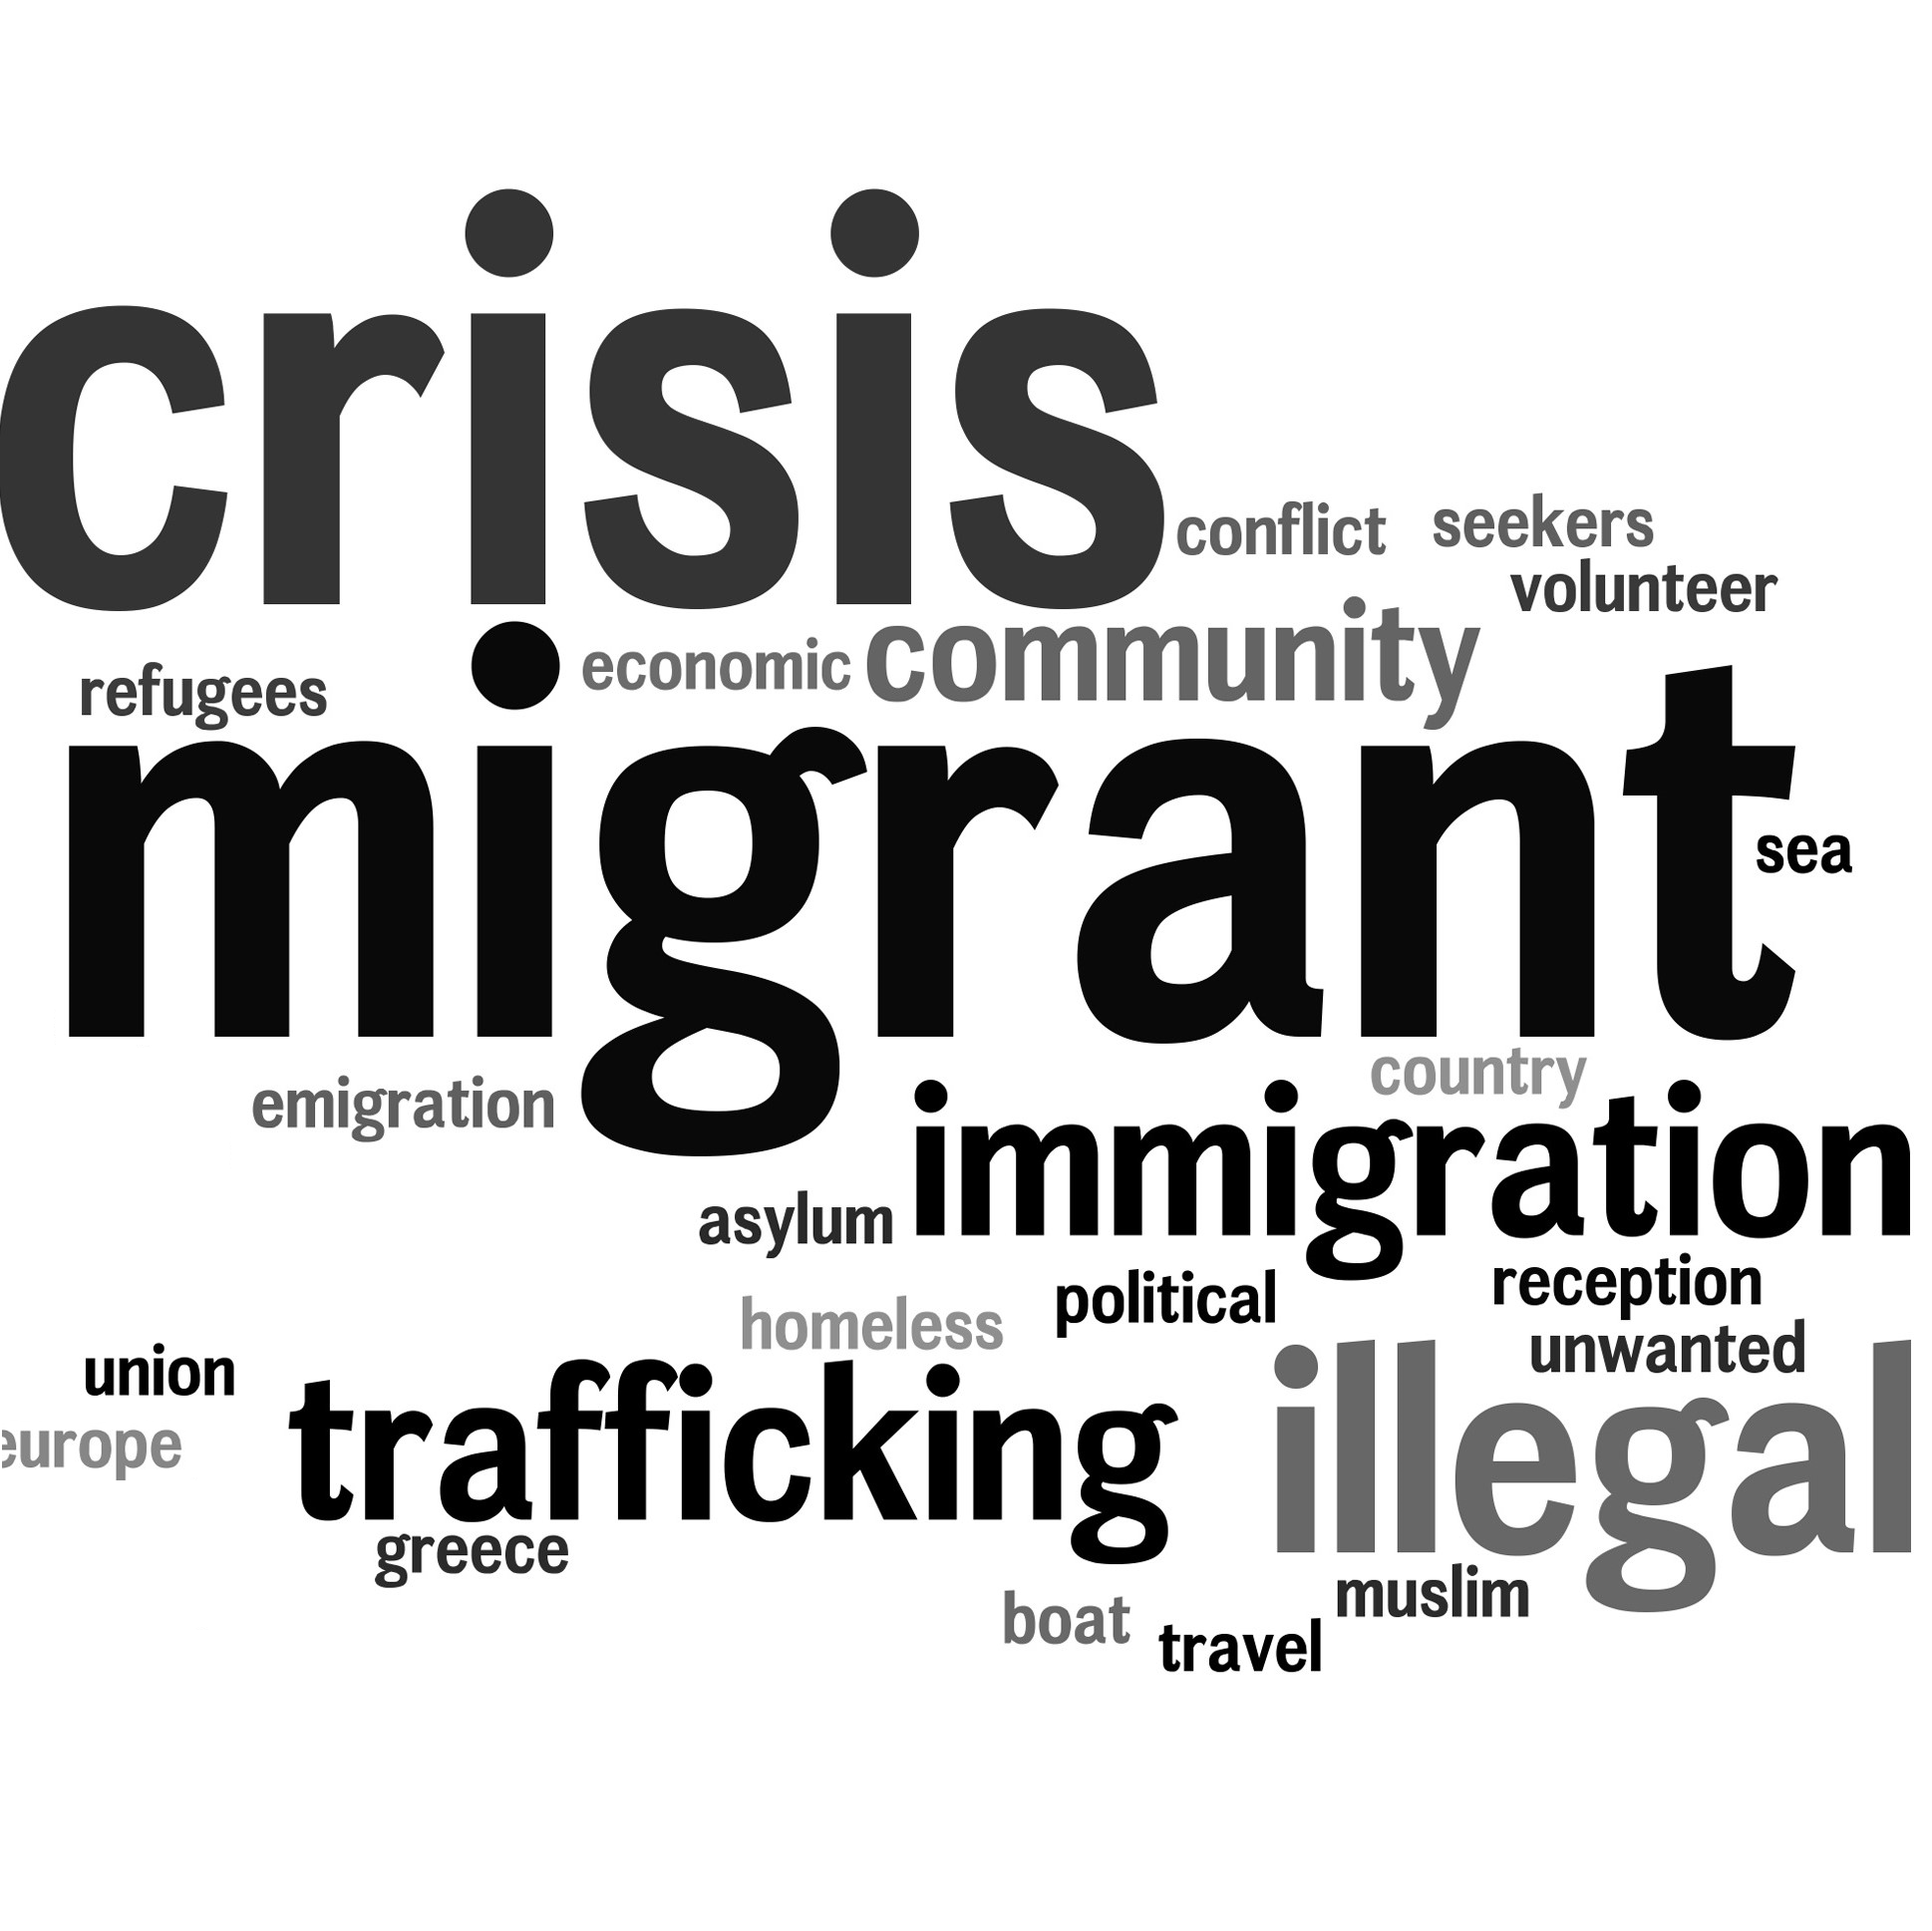 Humanities Series: Safety, Security and Human Rights of Migrants Migrant wordcloud